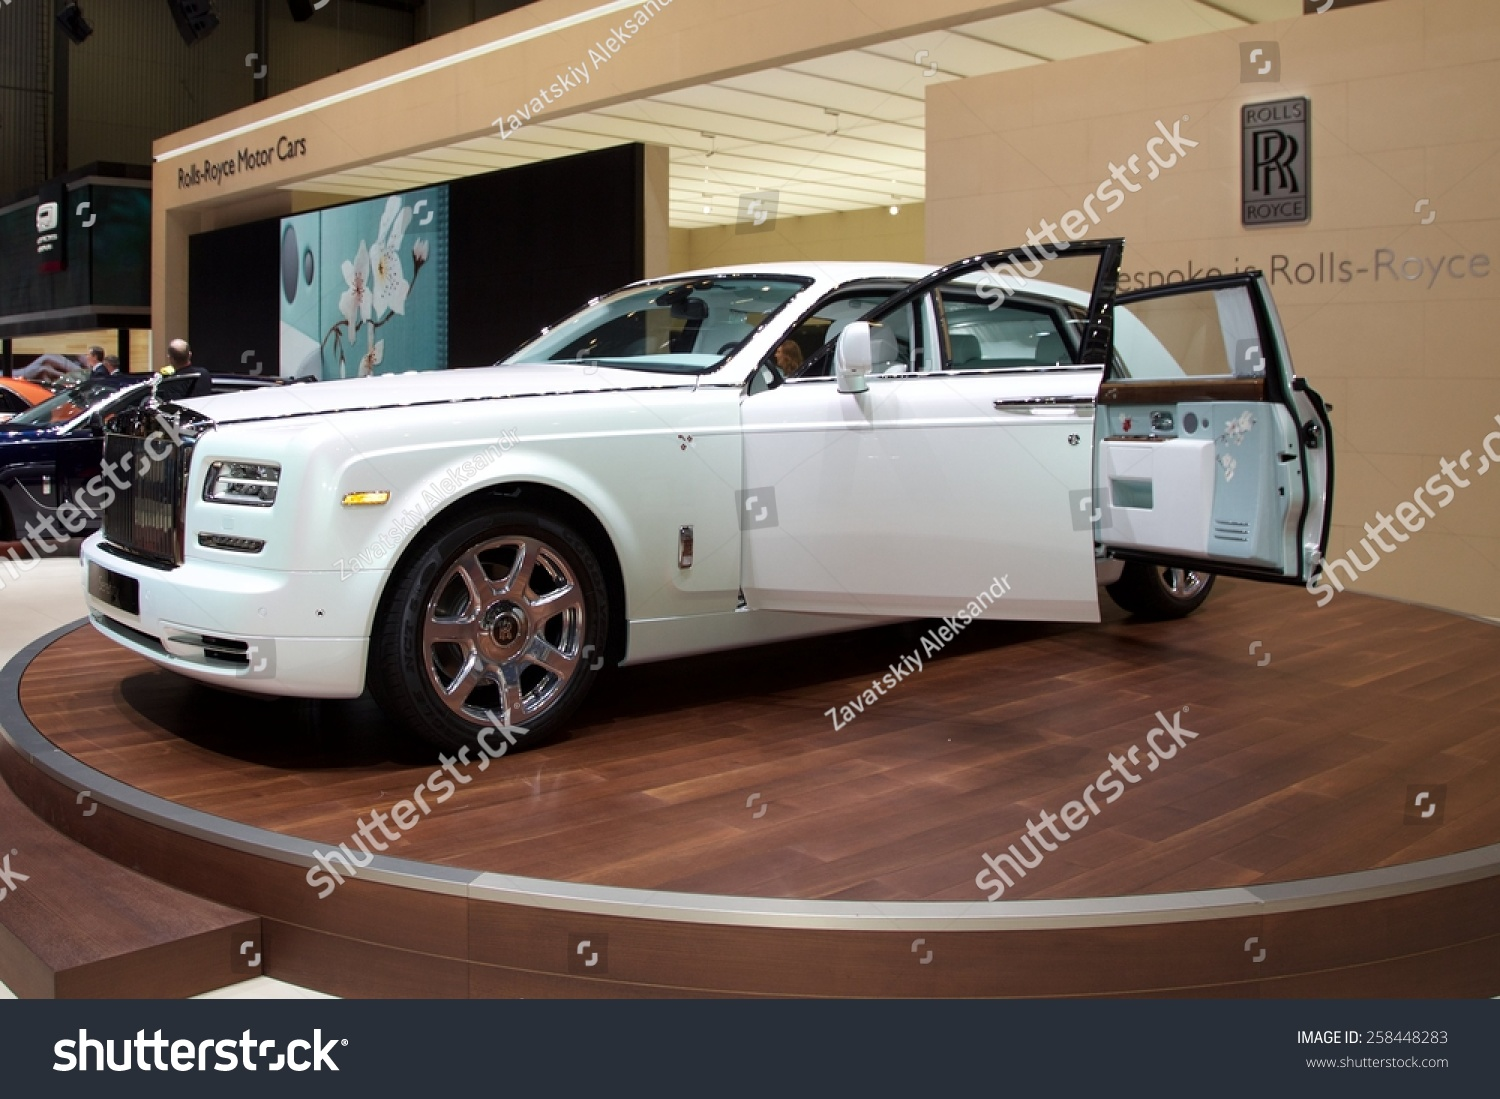 Phantom Serenity 2015 Rolls Royce Phantom Serenity Presented 85th Stock Photo Edit